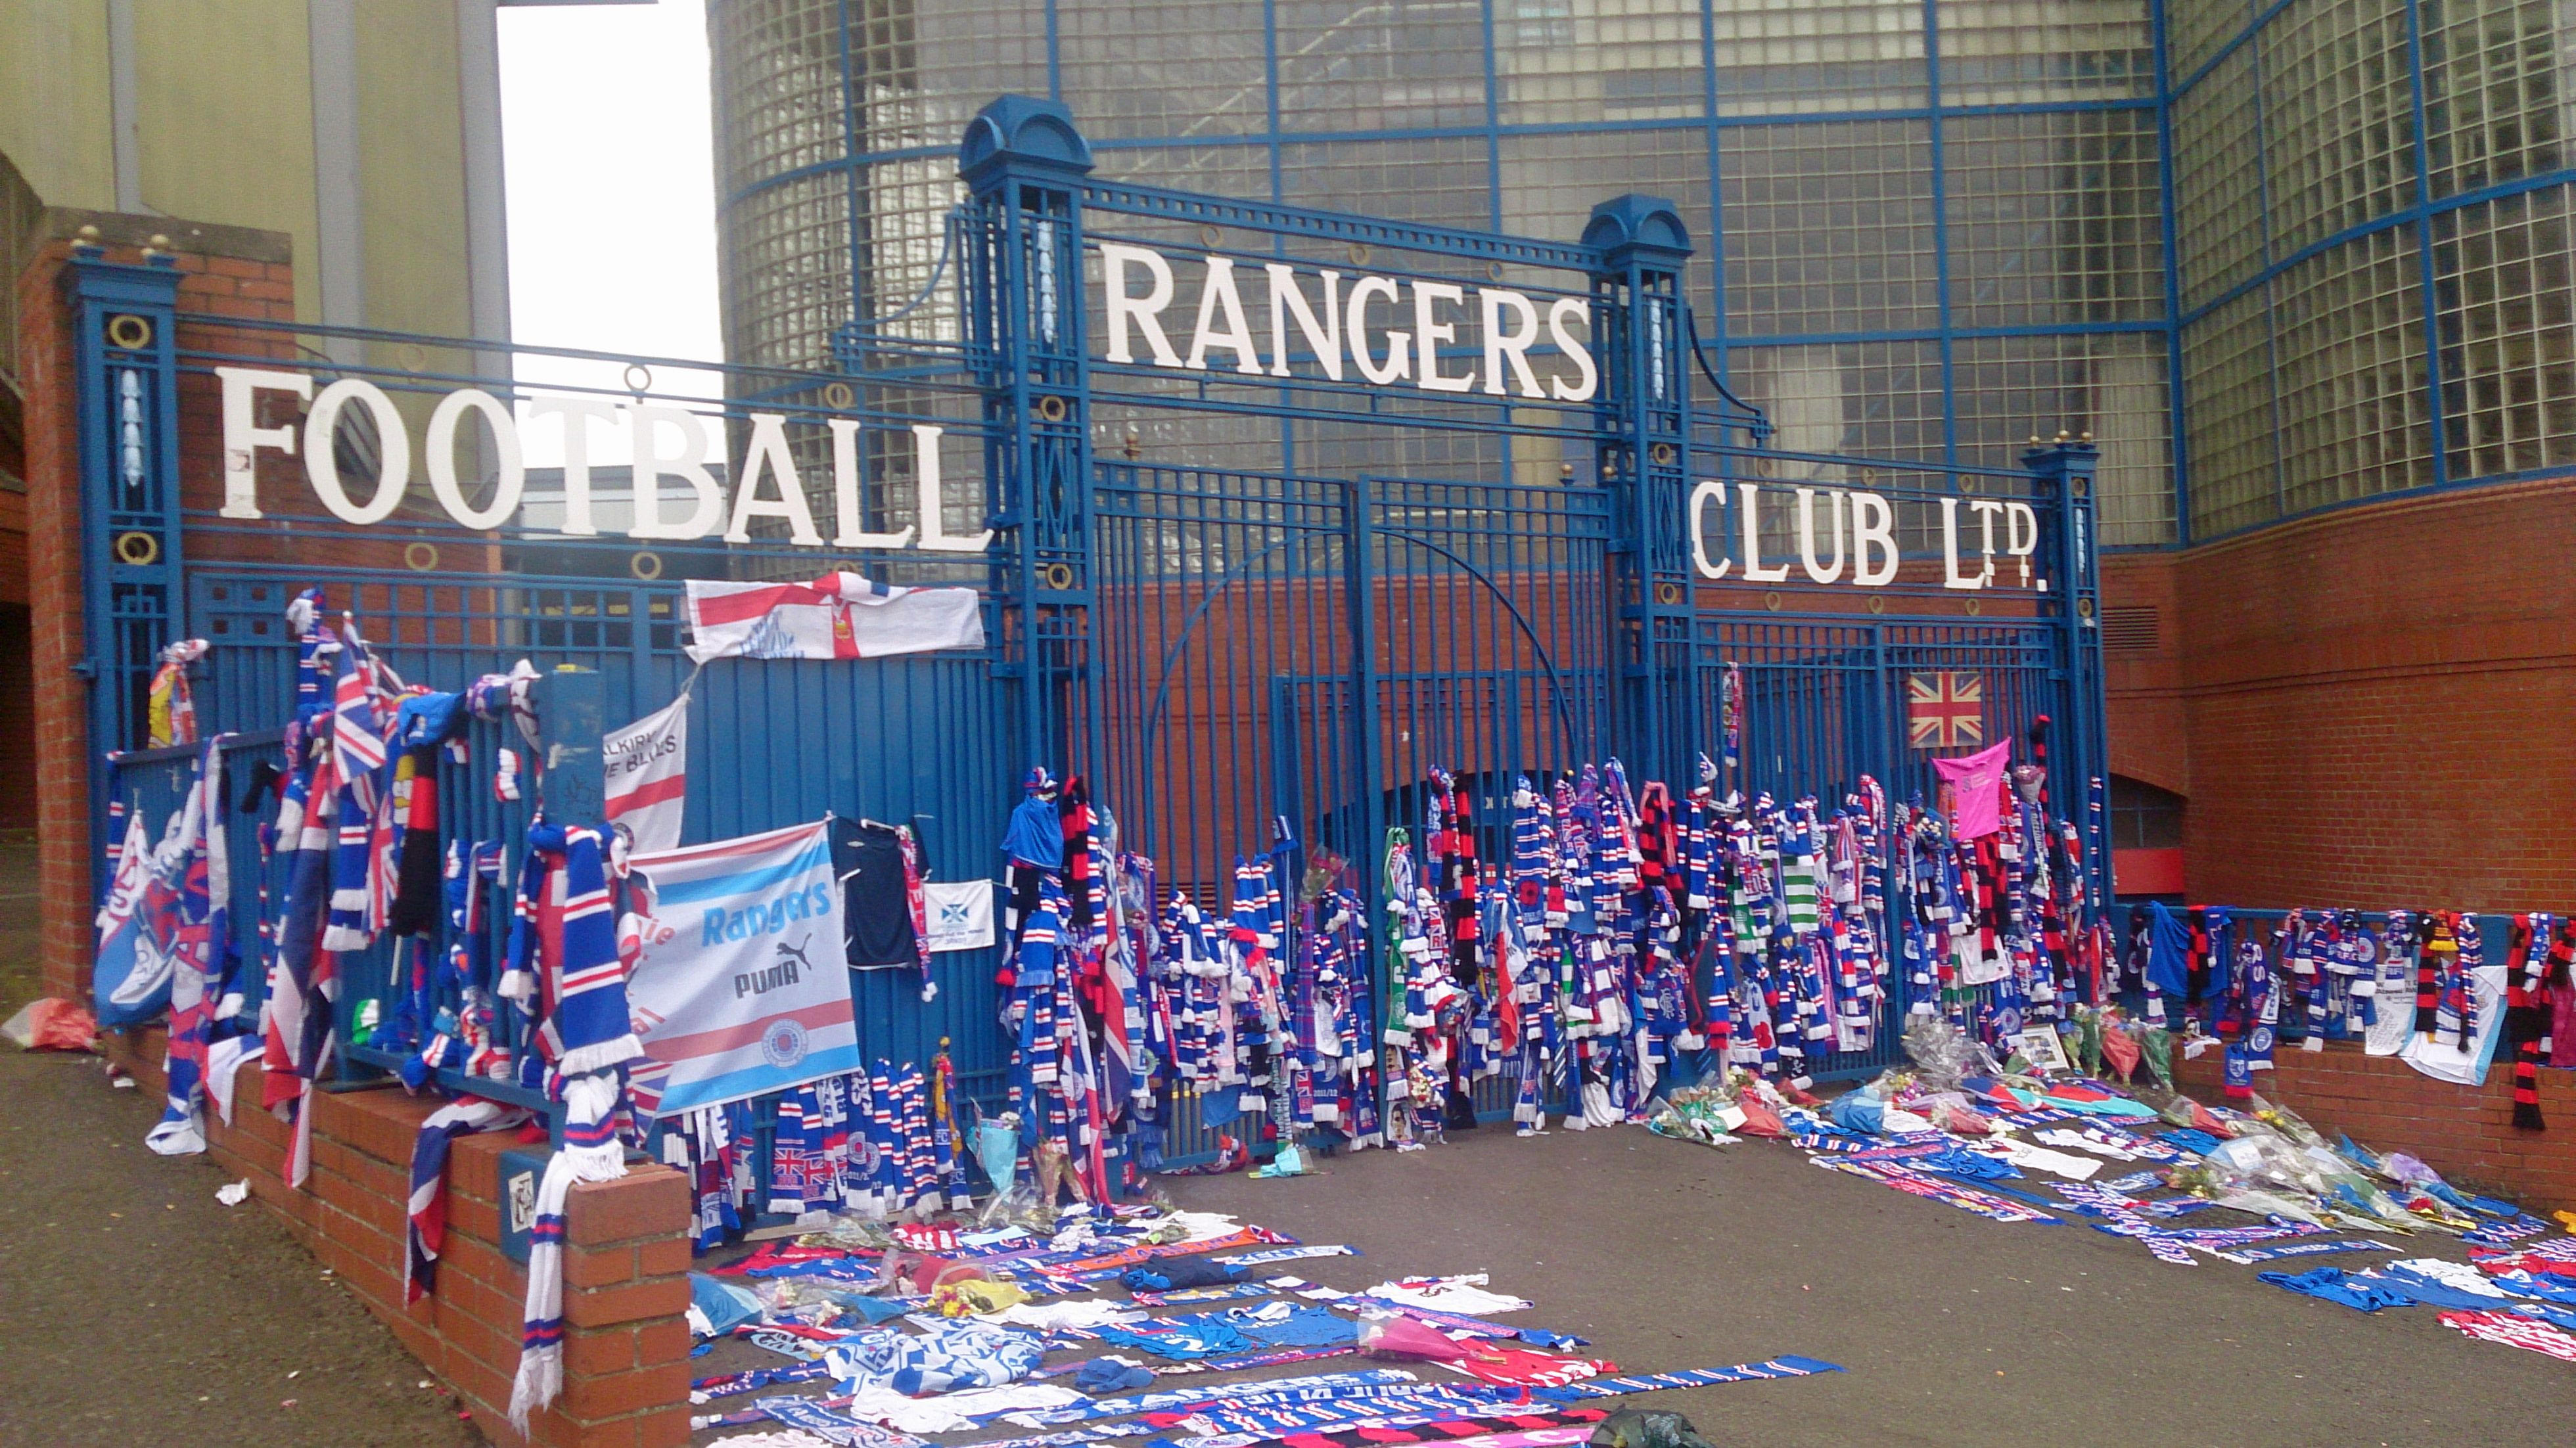 This is a shot of the Sandy Jardine Memorial, at the gates of Ibrox Stadium.